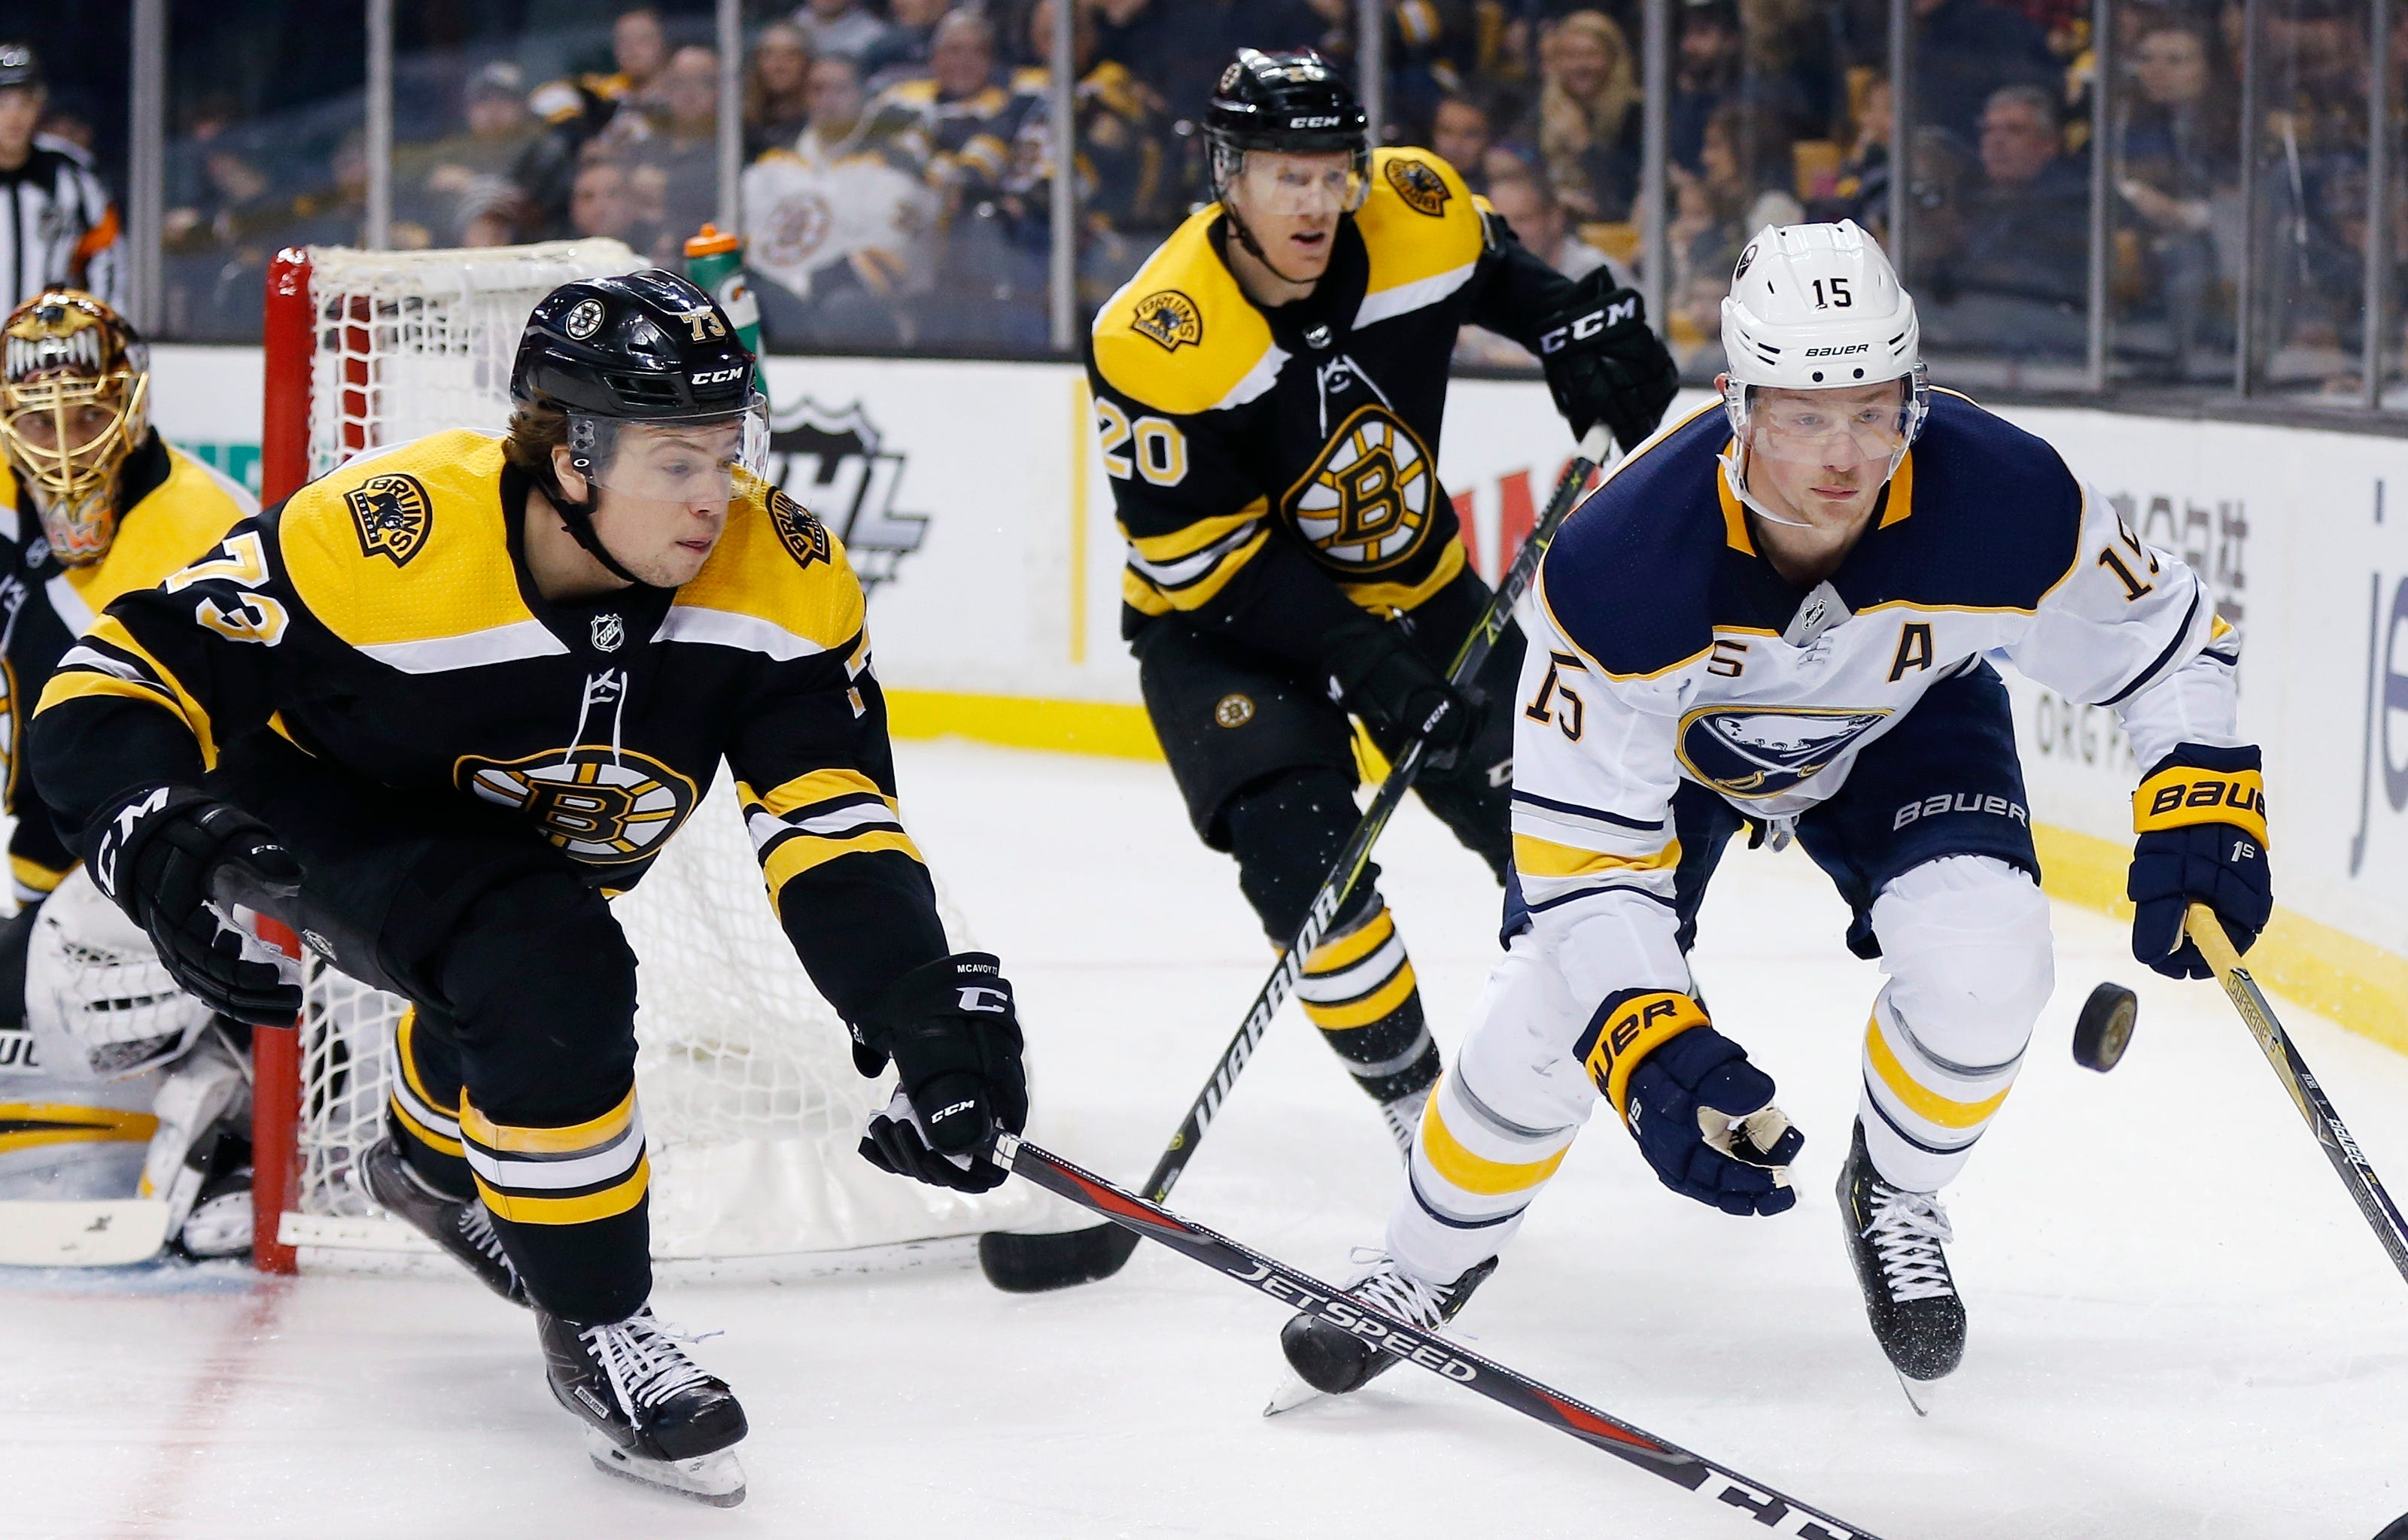 Sabres' Eichel out indefinitely with sprained right ankle